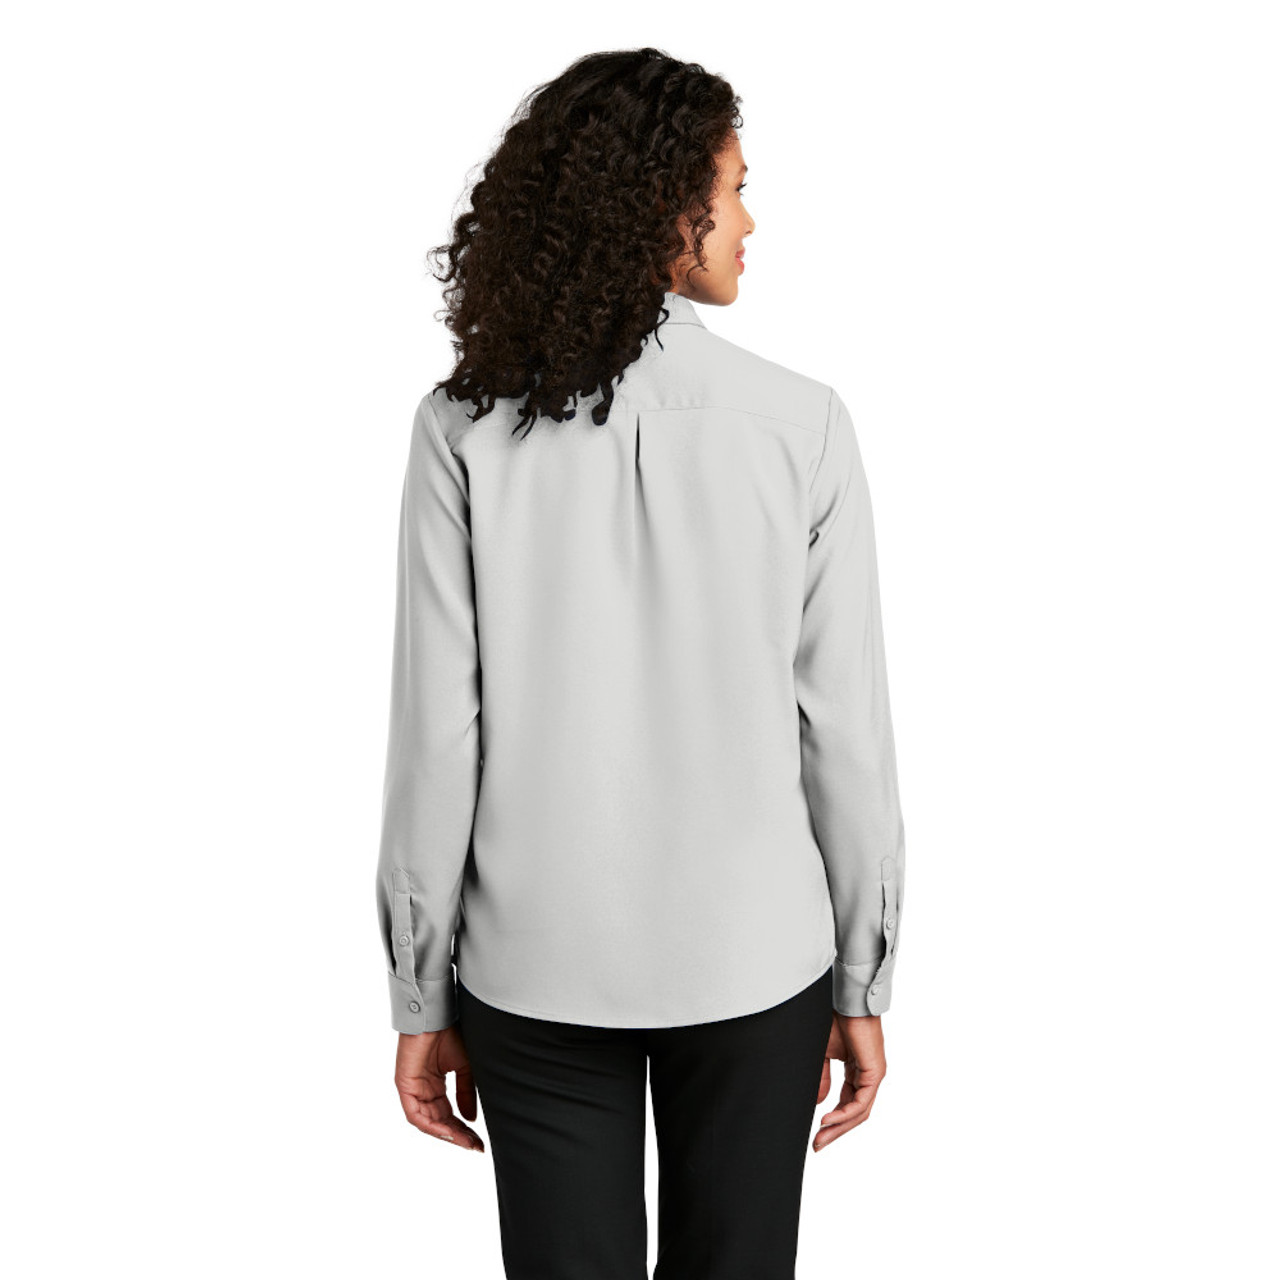 Ladies Long Sleeve Performance Staff Shirt